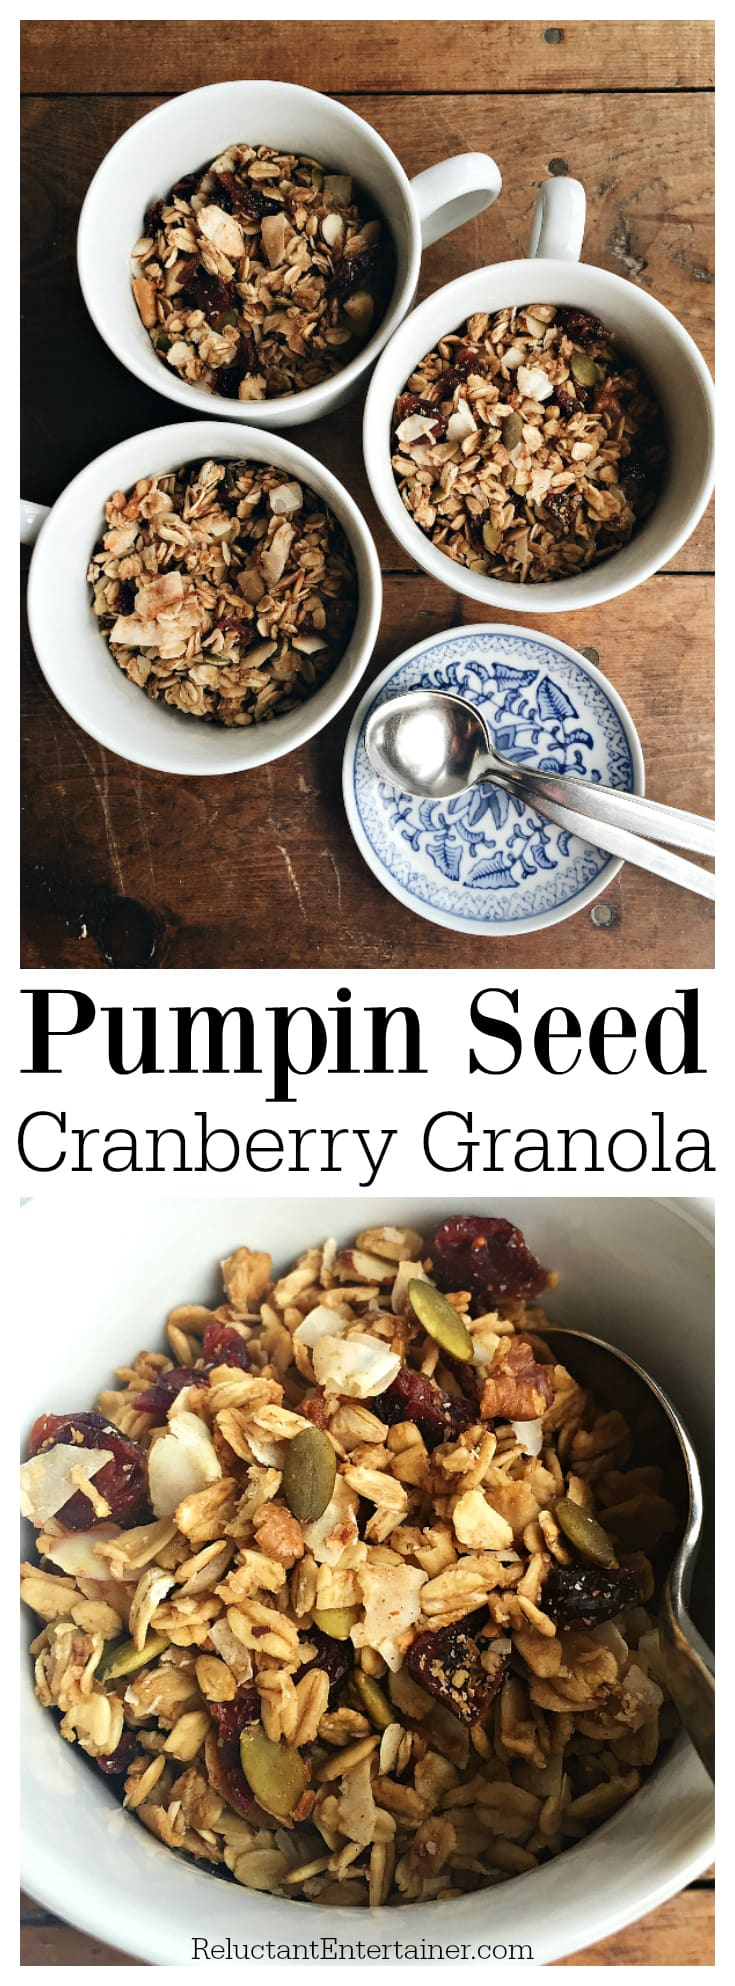 Pumpkin Seed Cranberry Granola from ReluctantEntertainer.com